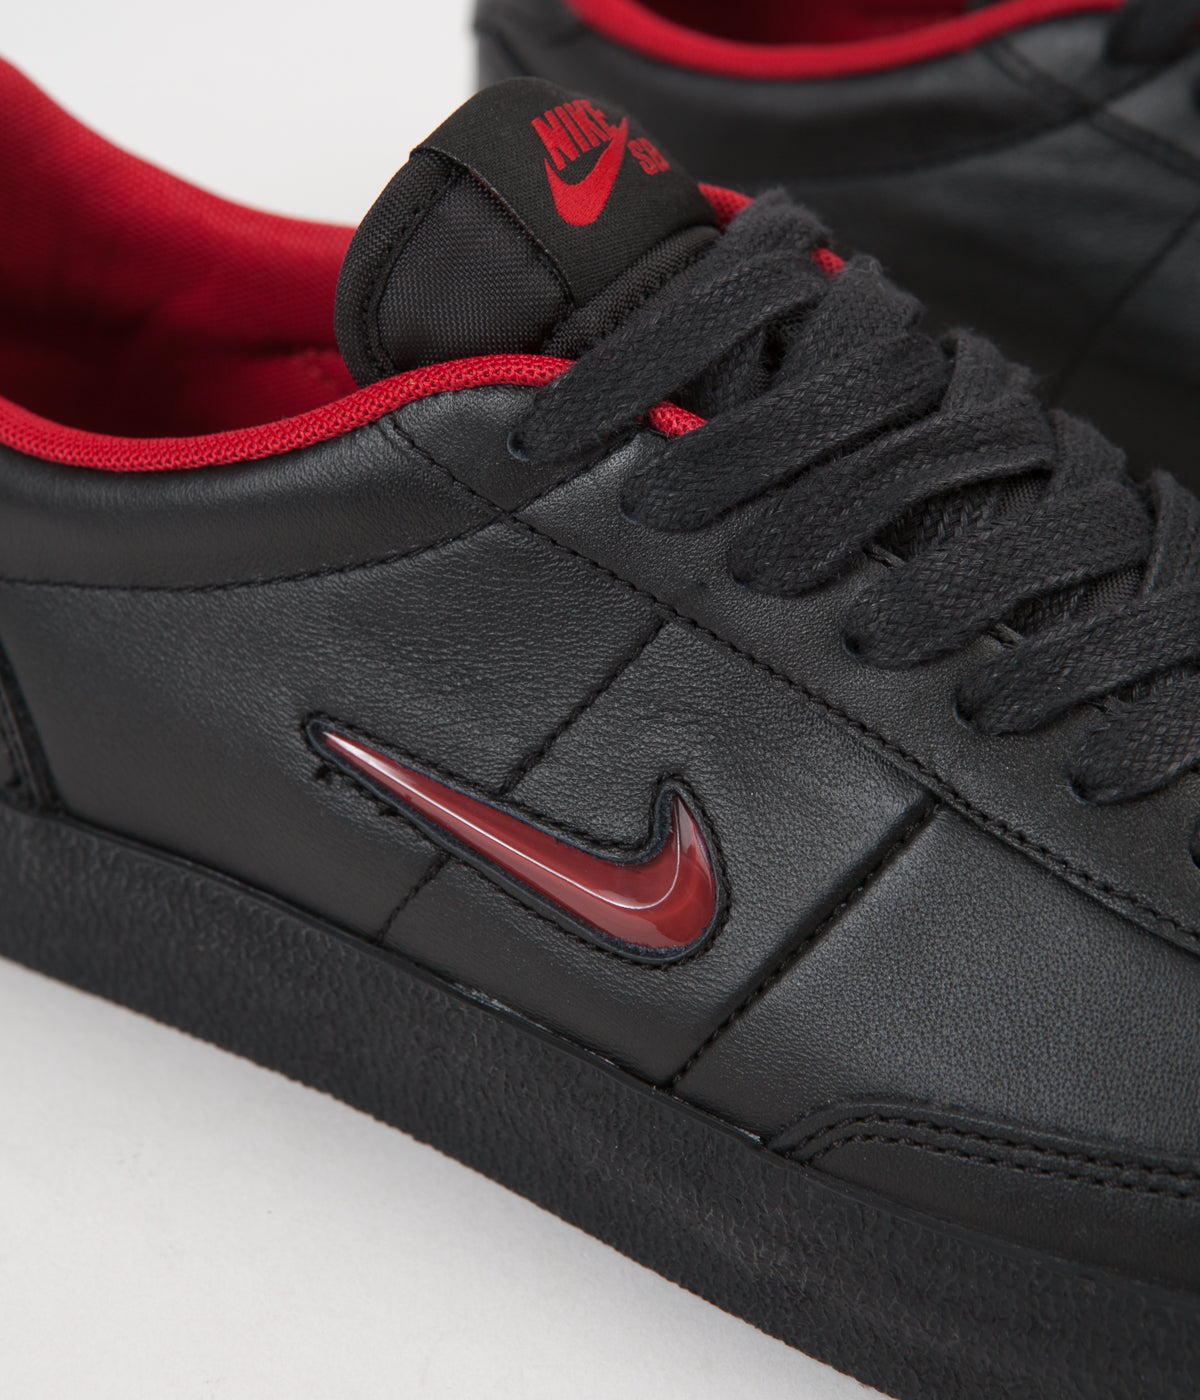 Nike SB x Hockey Killshot 2 QS Shoes - Black / Gym Red / Black